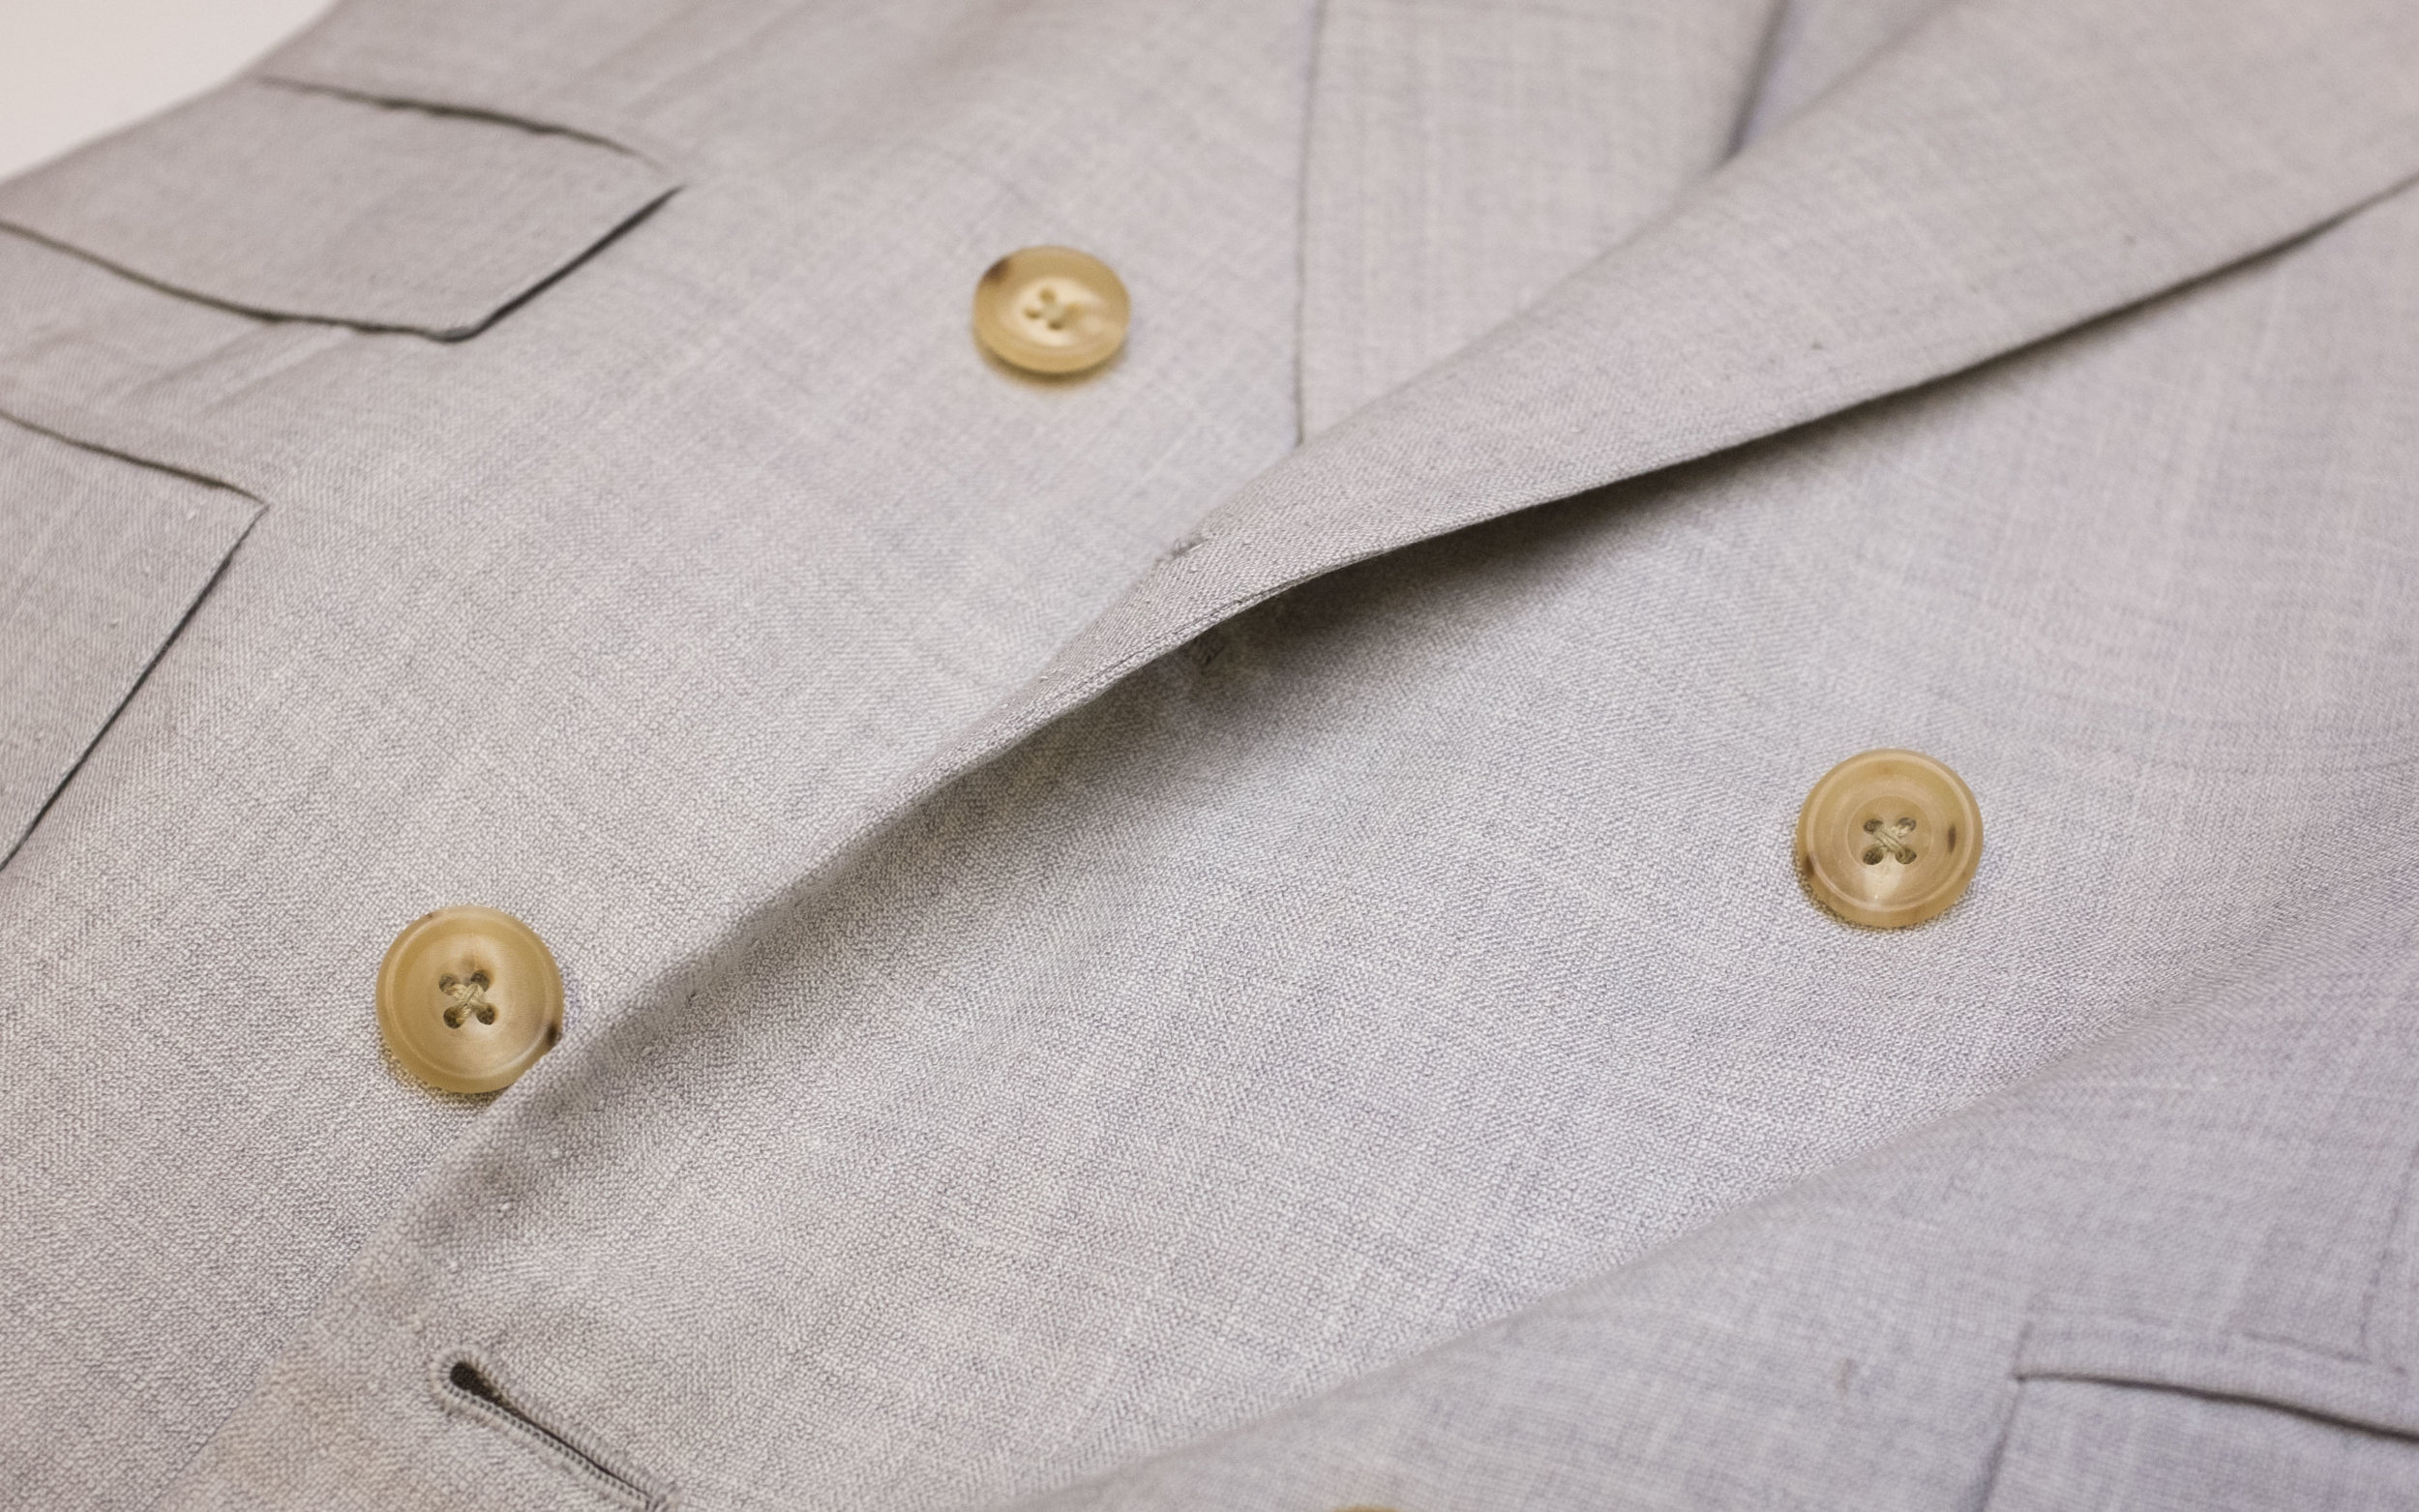 A Flusser Femme double-breasted suit jacket in light grey.